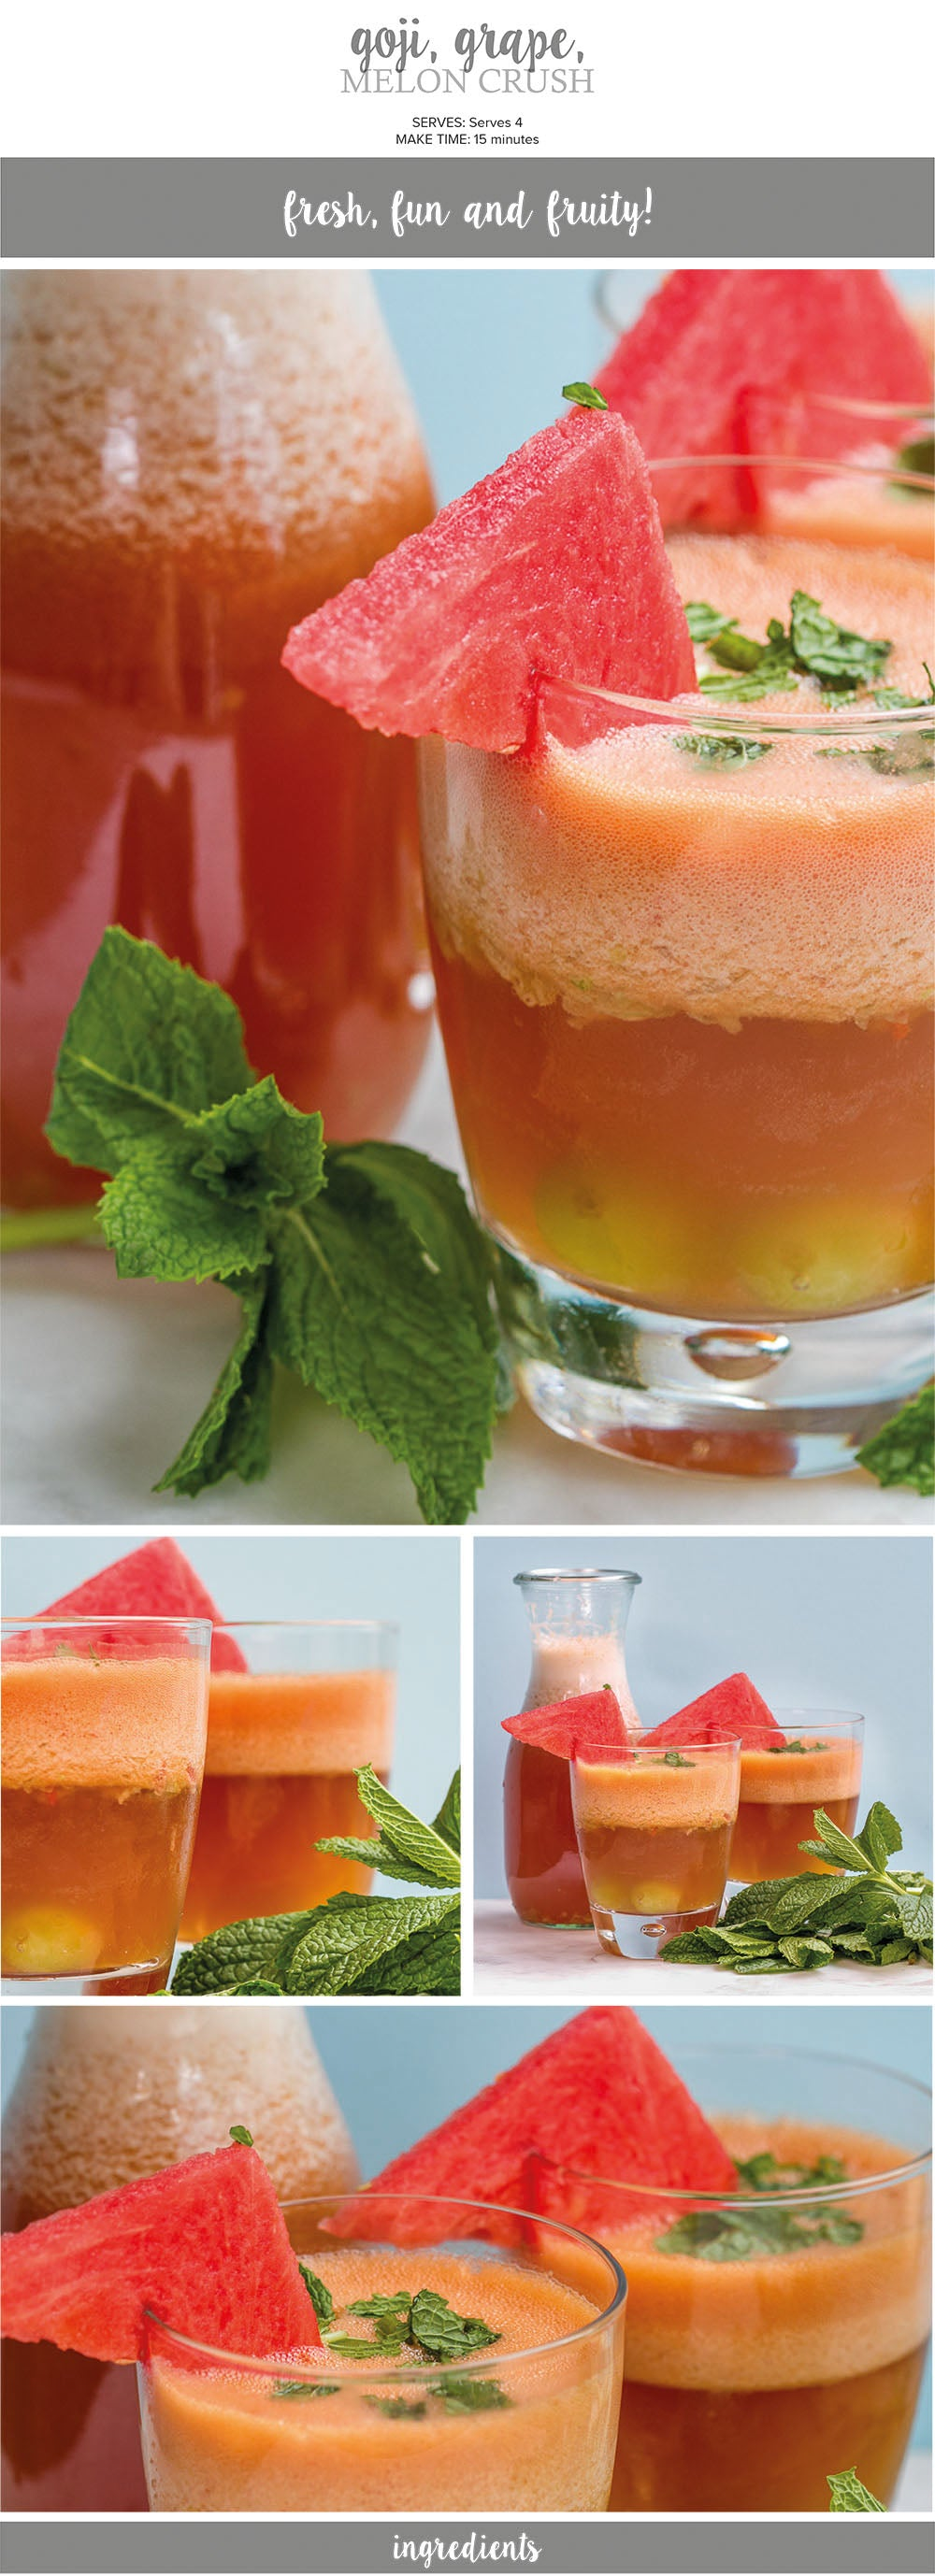 Goji, grape and melon crush recipe